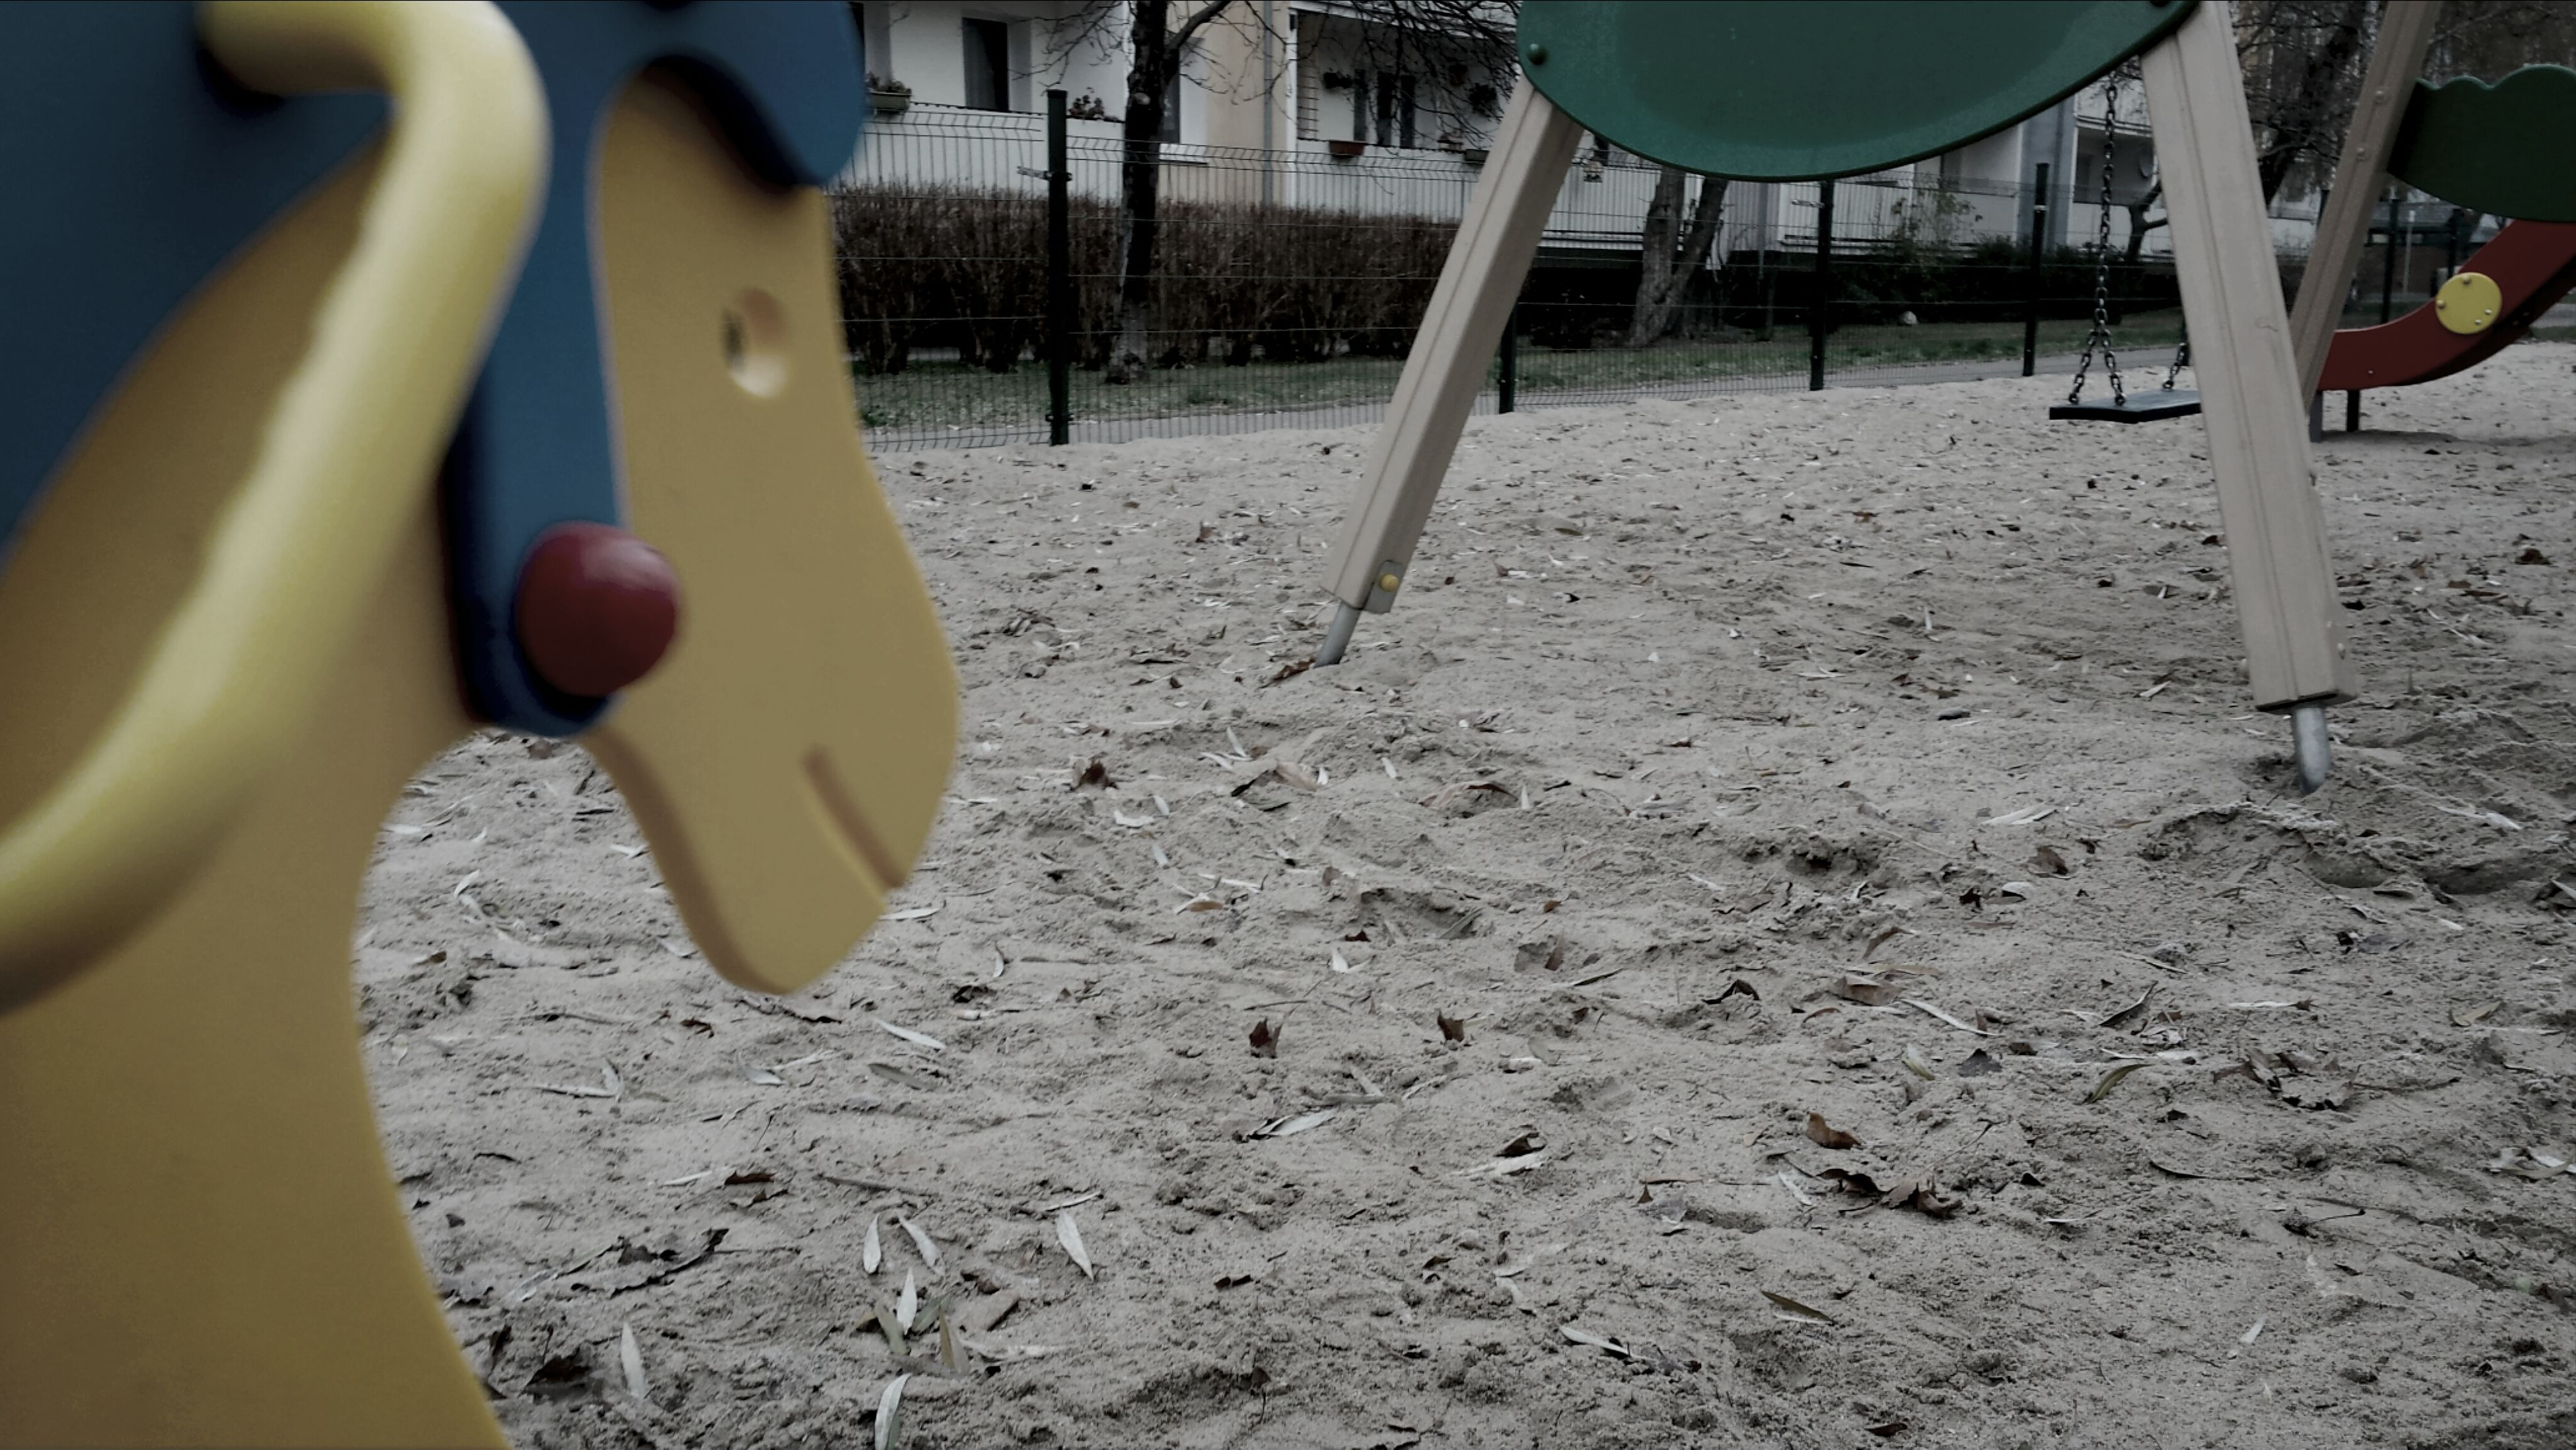 high angle view, sunlight, day, playground, childhood, outdoors, close-up, transportation, metal, cropped, part of, wheel, chair, field, no people, absence, shadow, street, front or back yard, equipment